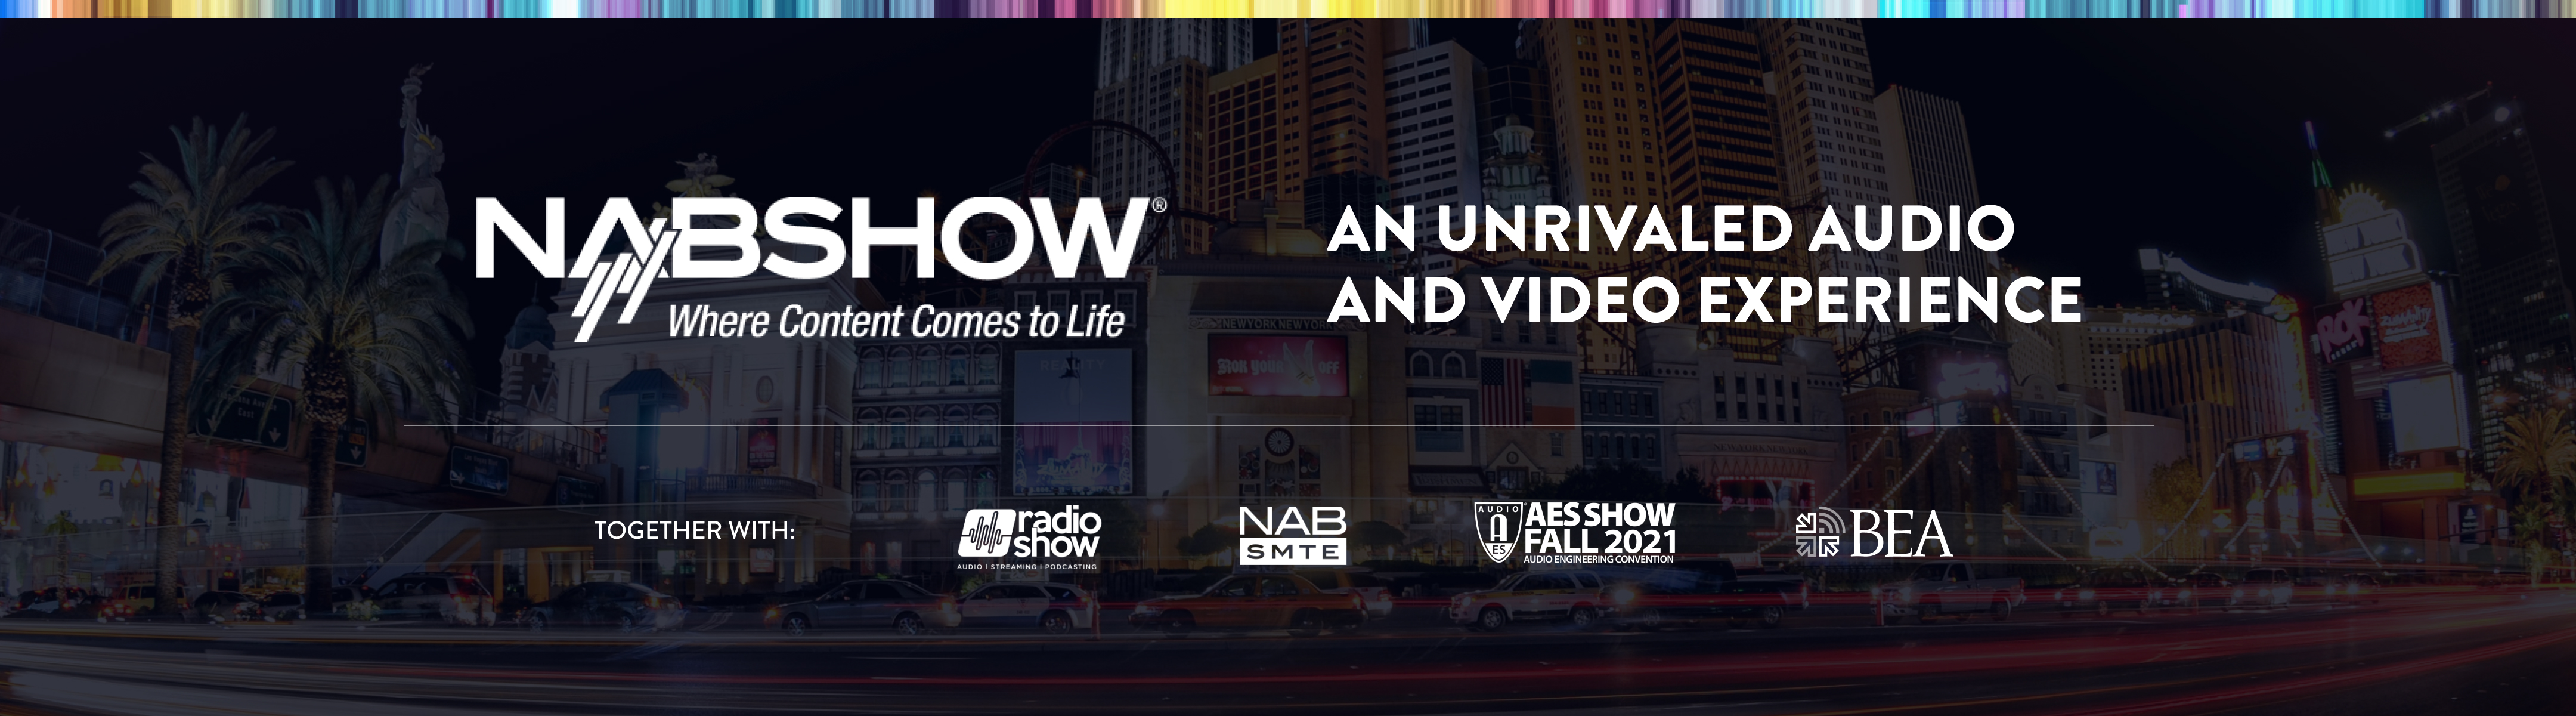 NAB Show: An unrivaled audio and video experience. Together with: Radio Show, SMTE, AES Show Fall 2021, and BEA.